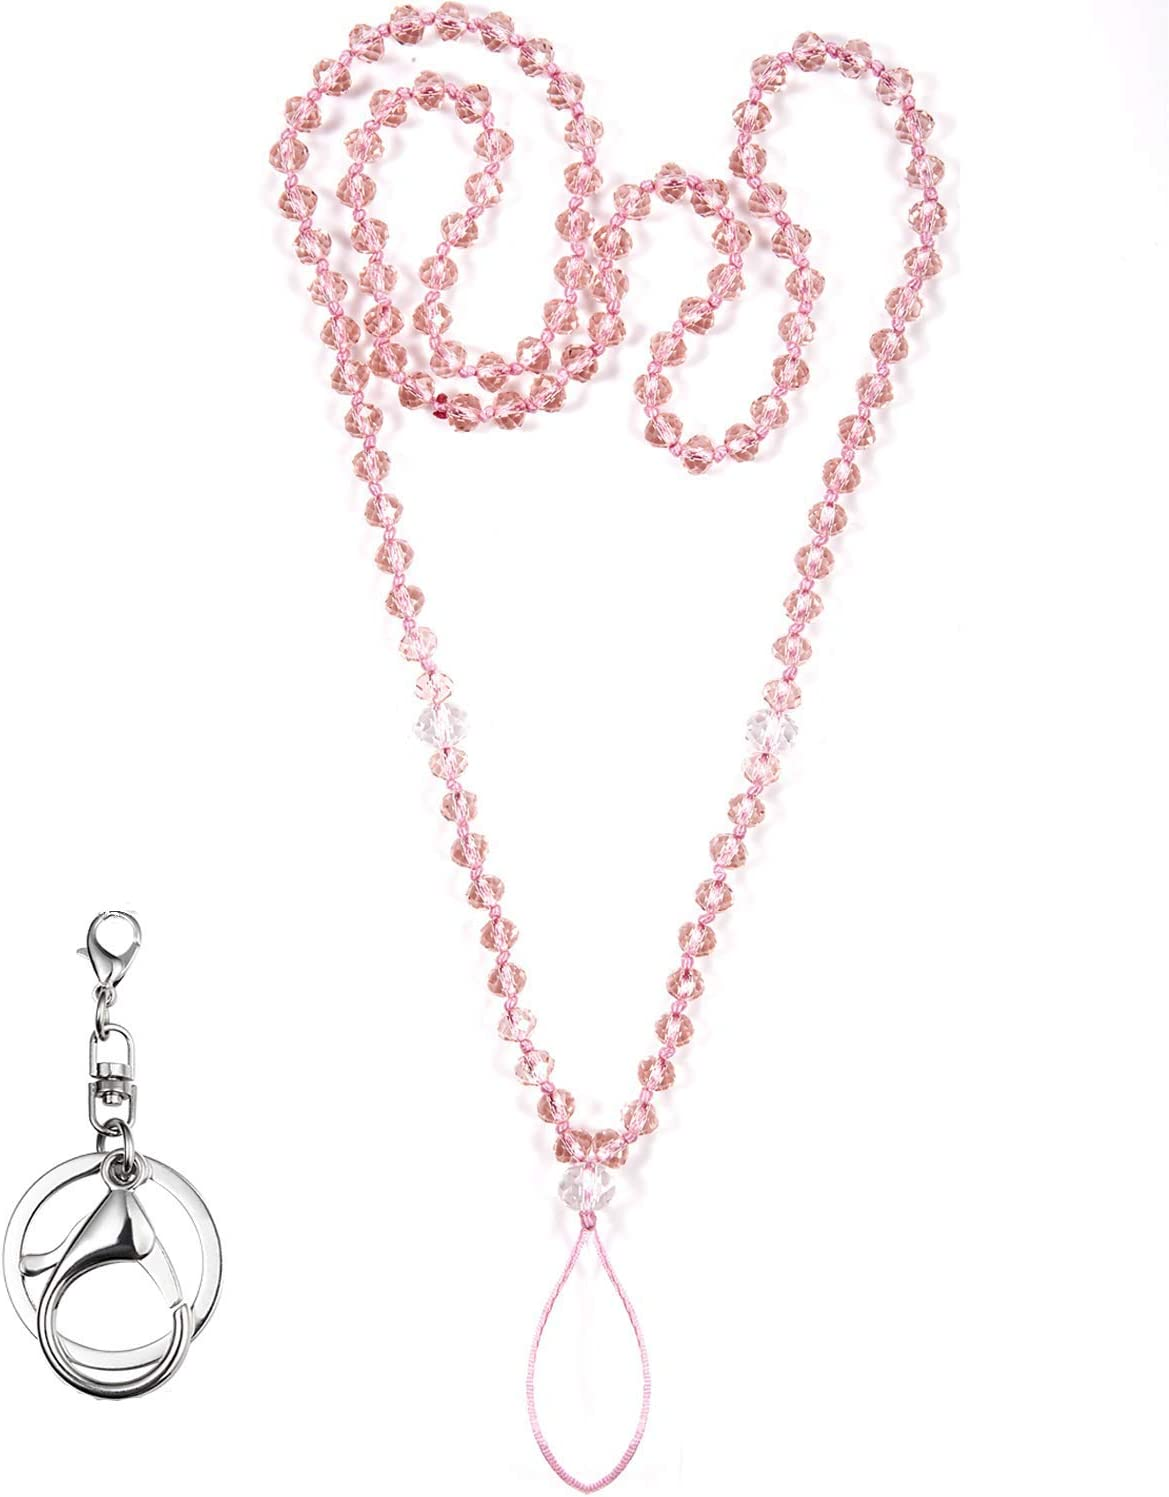 Women Crystal Bling Beads Neck Lanyard Strap ID Name Badge Holde Phone Card G5A4